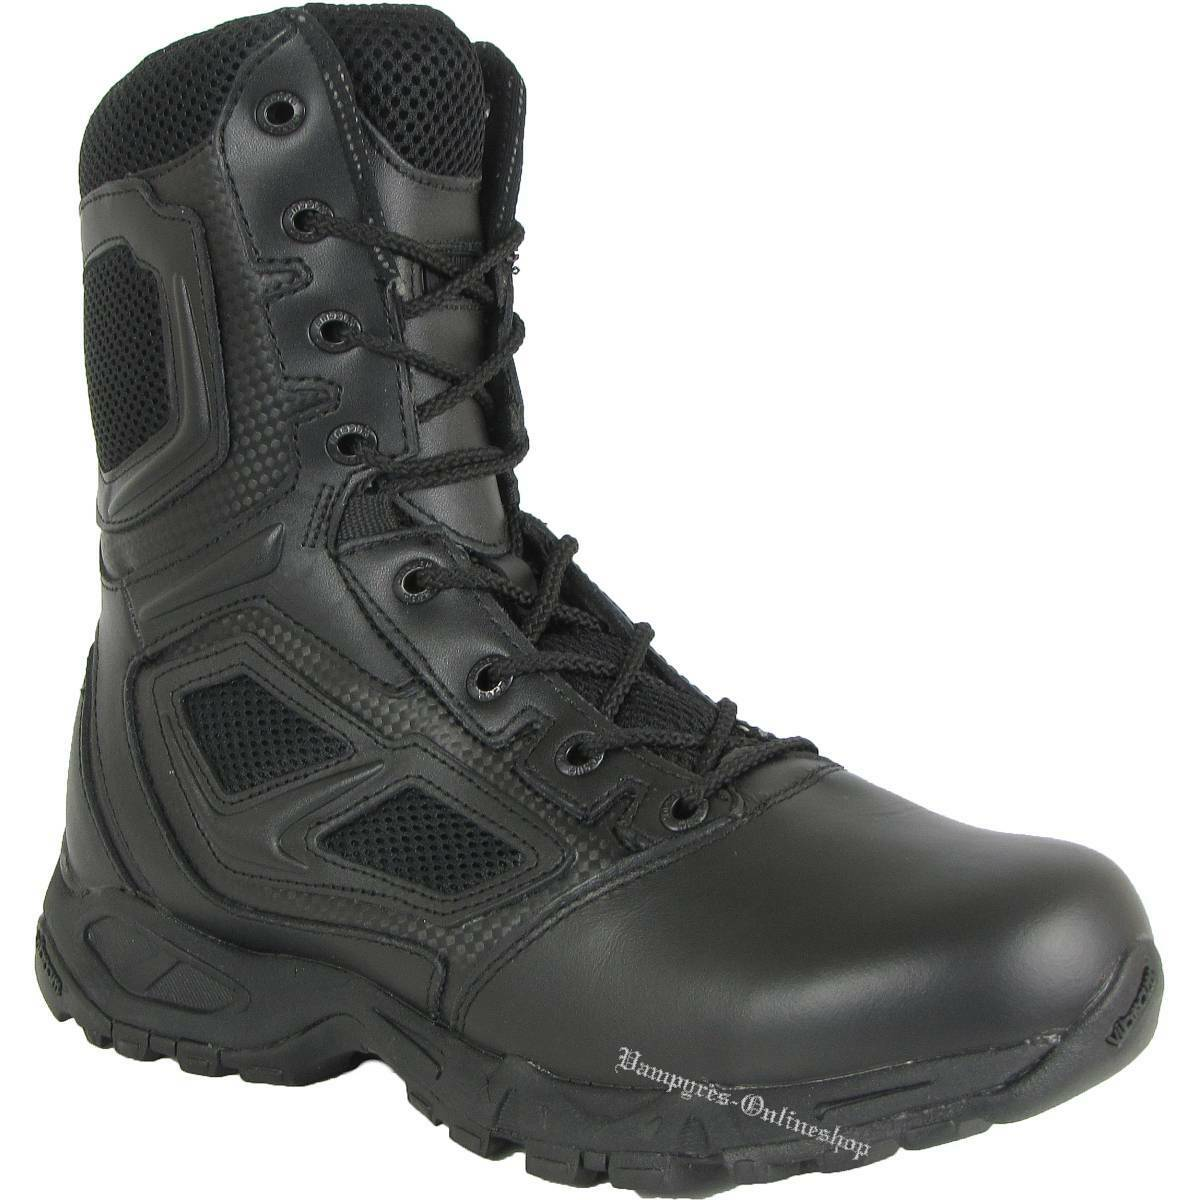 Hi-Tec Magnum elite Spider 8.0 negro zapatos HITEC Security botas negro